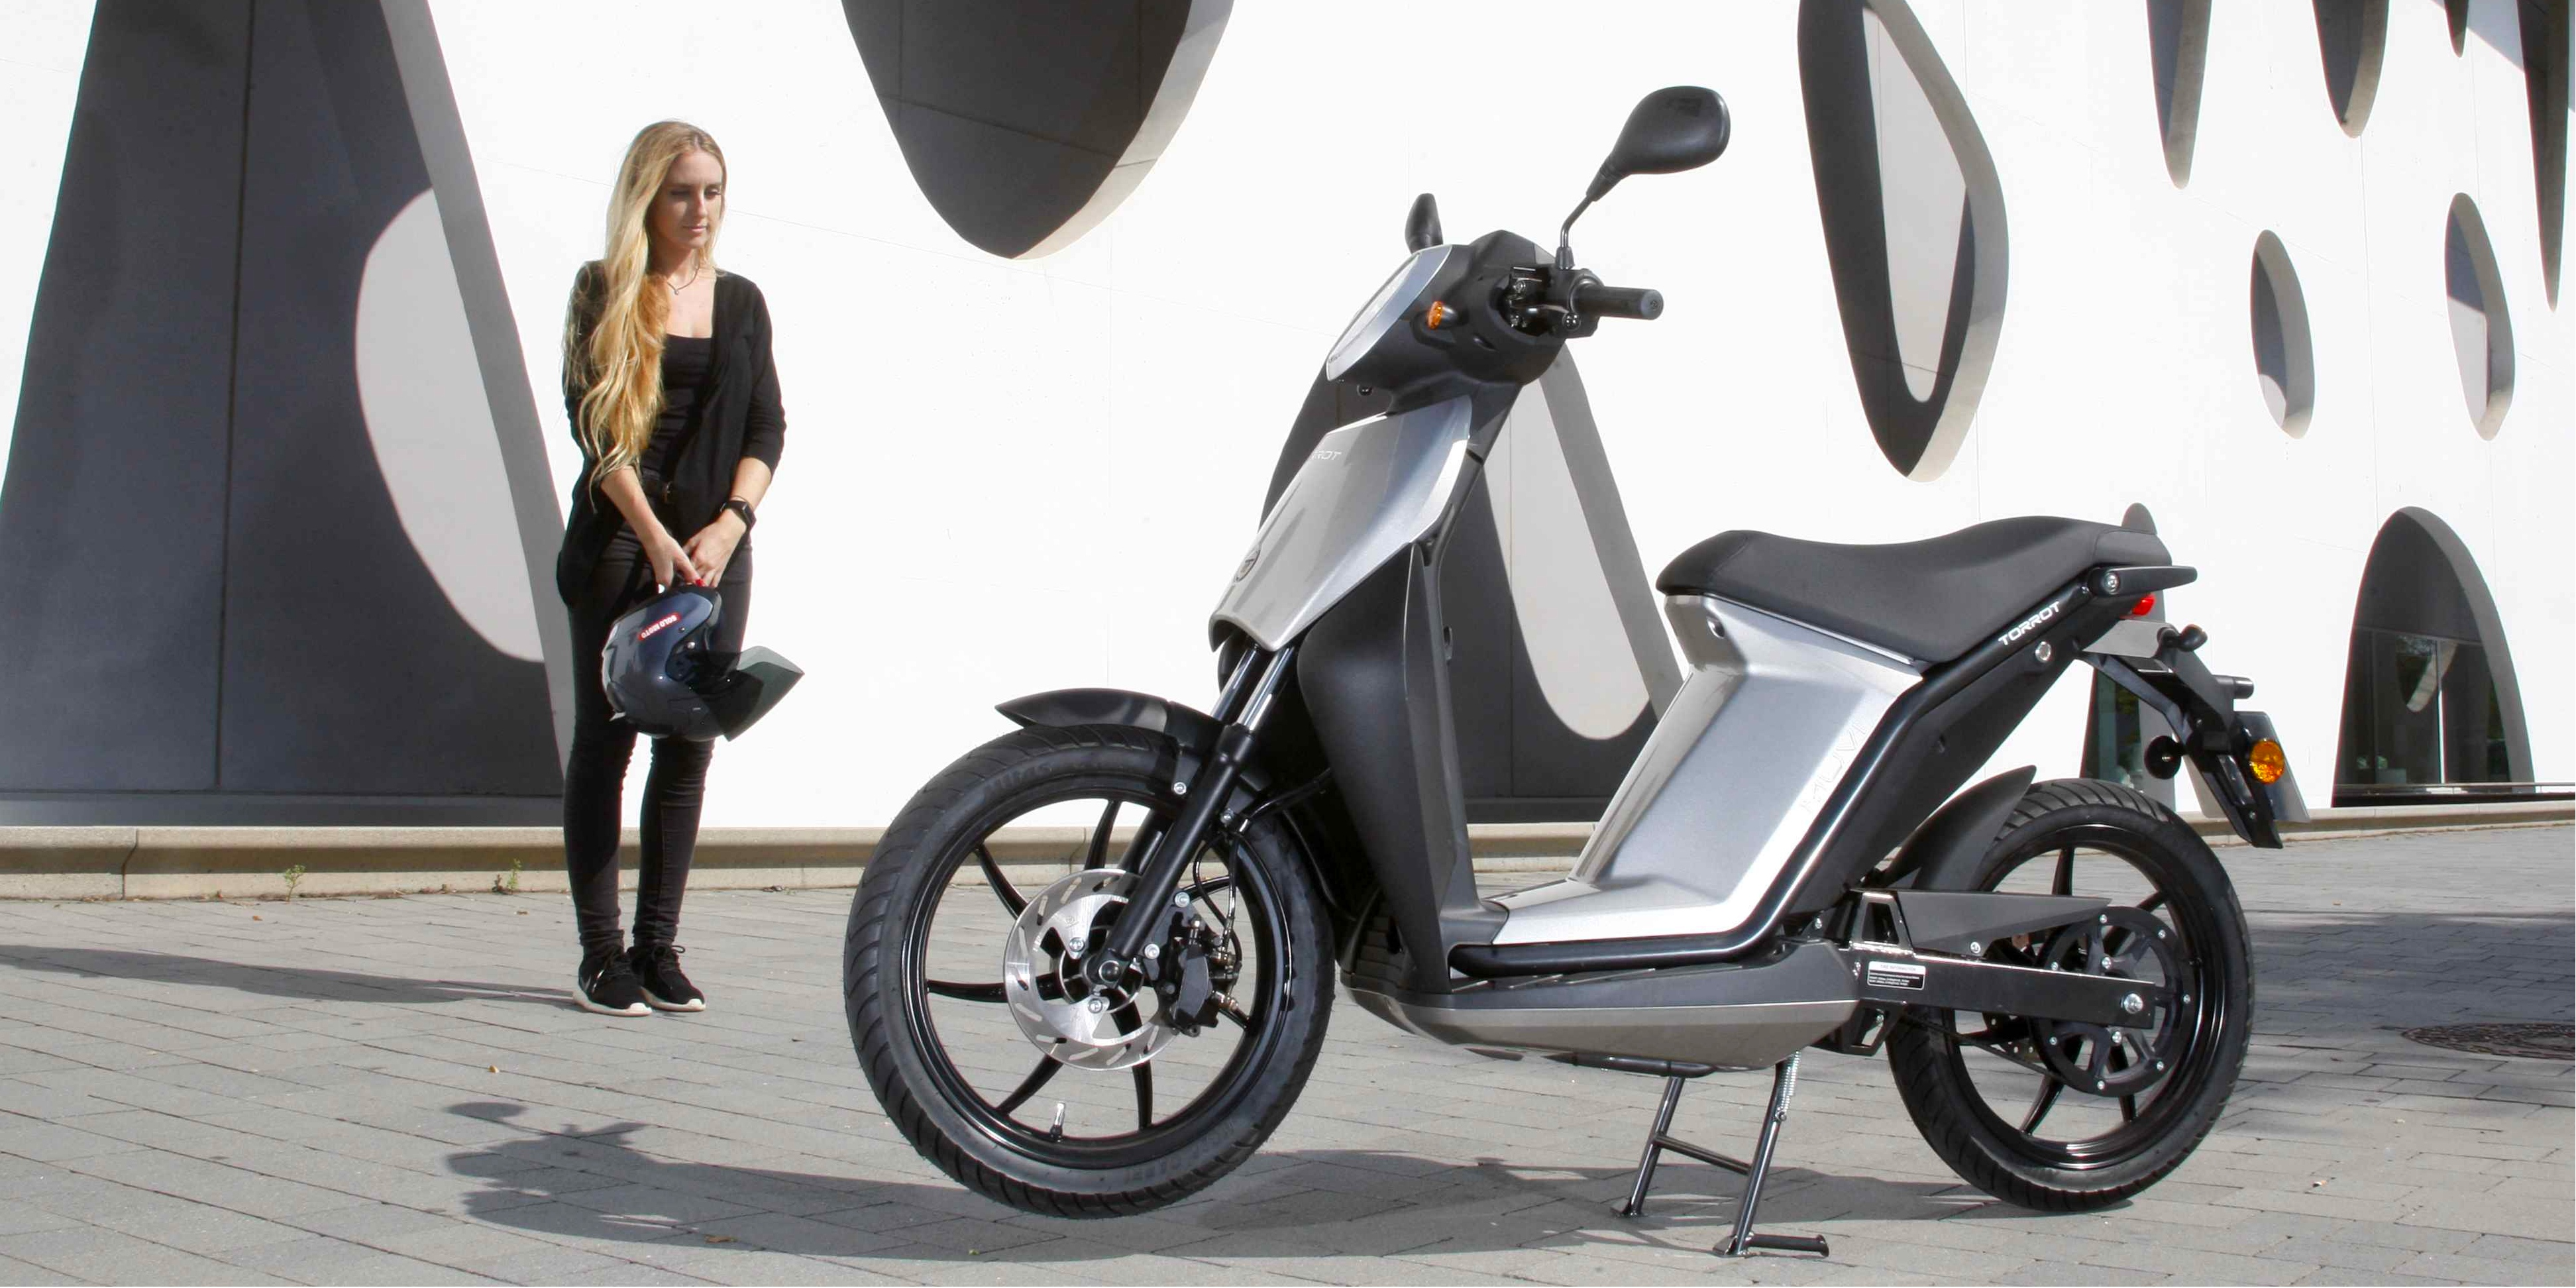 New York S First Electric Moped Rental Program Is Scooting Riders Around In Style Electrek